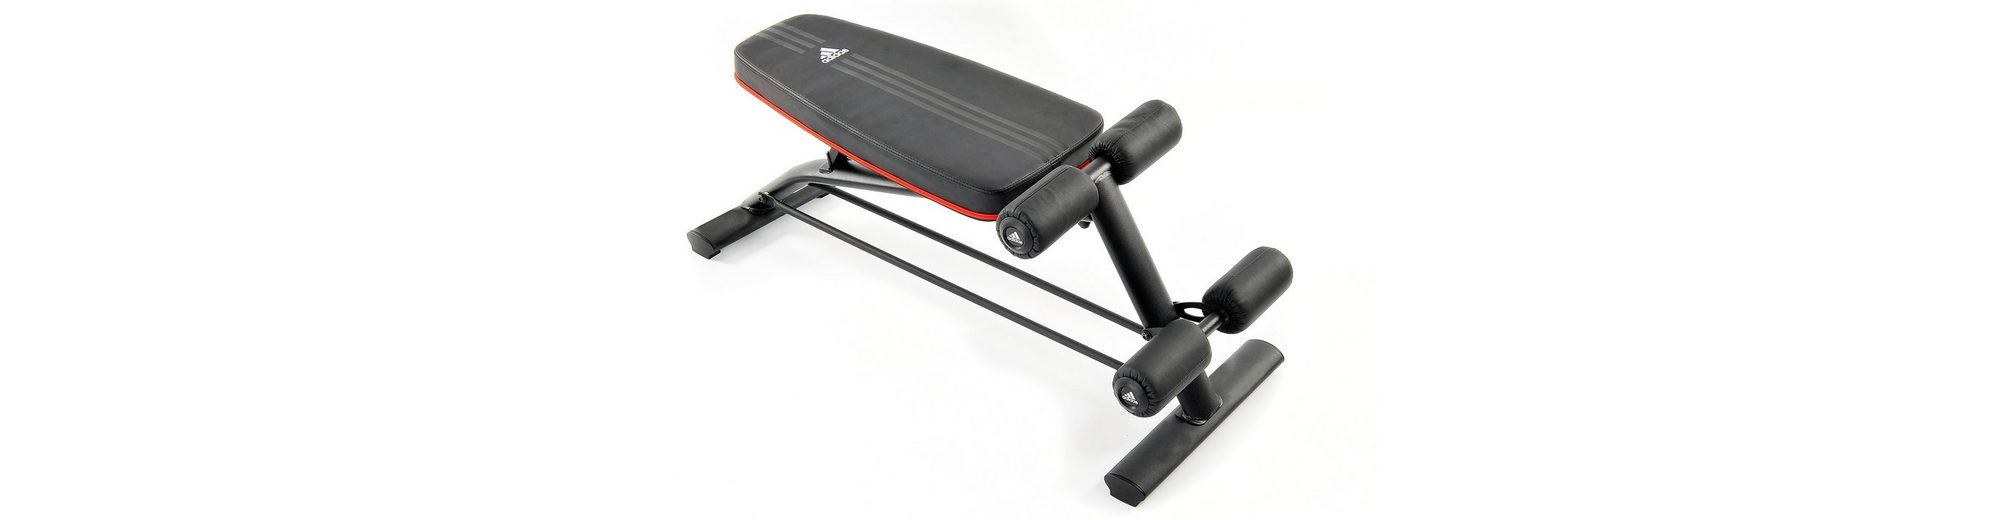 Trainingsbank, »Adjustable Ab Bench«, adidas Performance